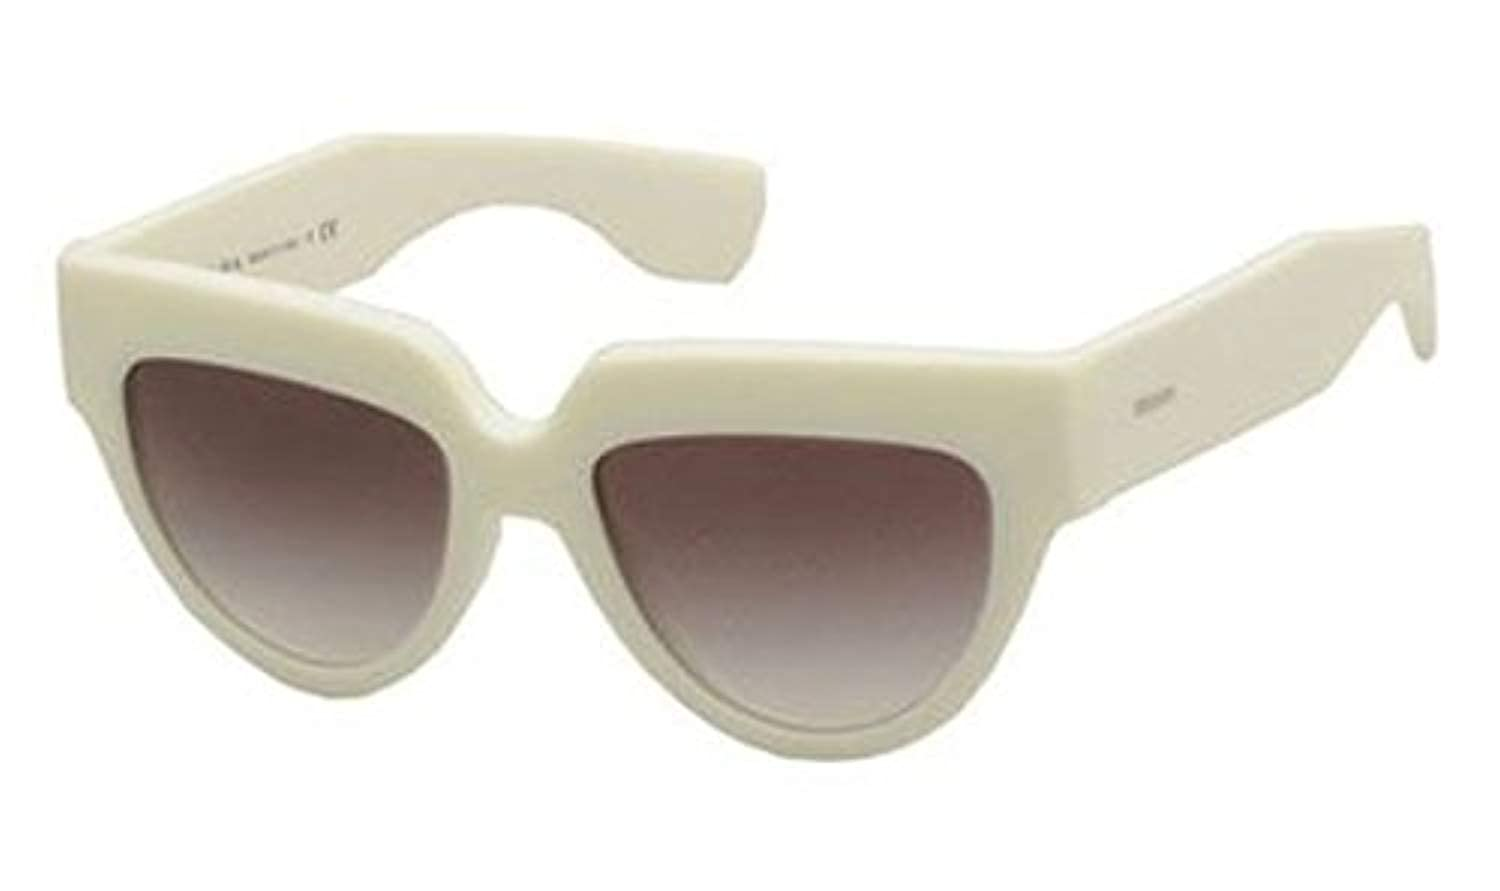 b6ef203f7a2aa Prada 29p Poeme Ivory Frame Grey Gradient Lens Plastic Sunglasses   Amazon.co.uk  Clothing